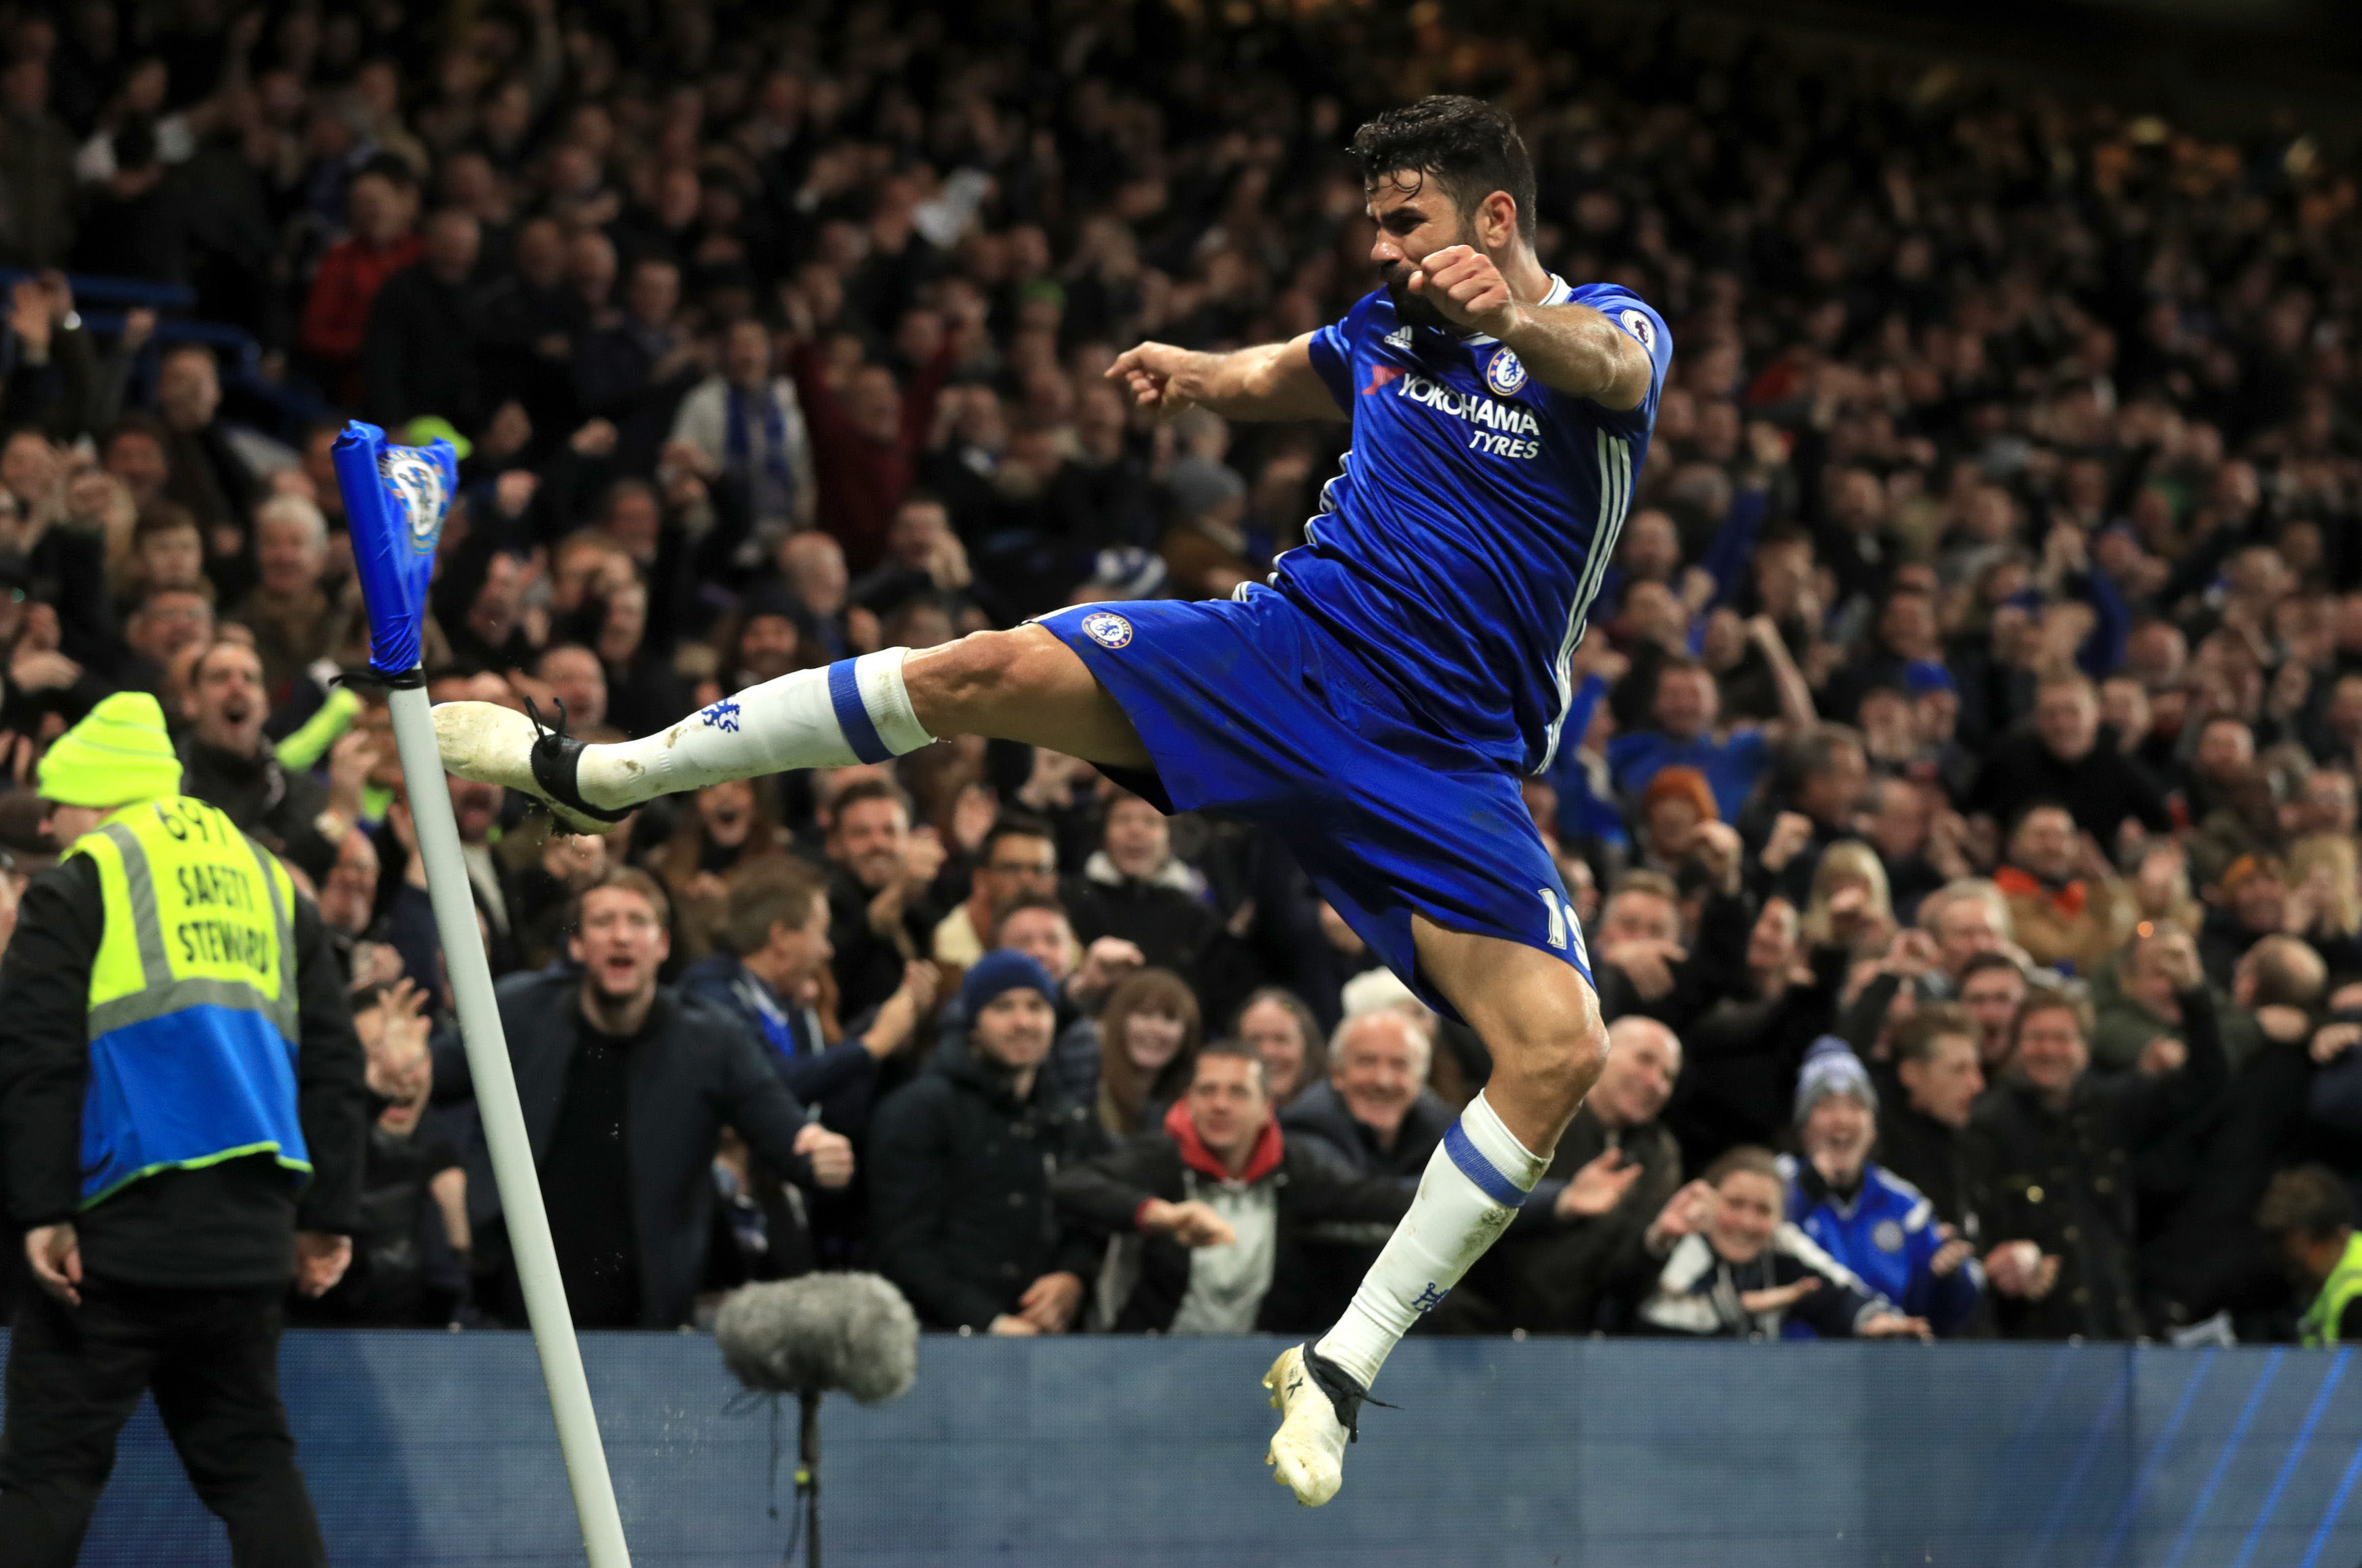 Chelsea's Diego Costa celebrates scoring his side's fourth goal of the game during their English Premier League soccer match against Middleborough at Stamford Bridge, London, on Saturday, December 31, 2016. Photo: Adam Davy/PA via AP